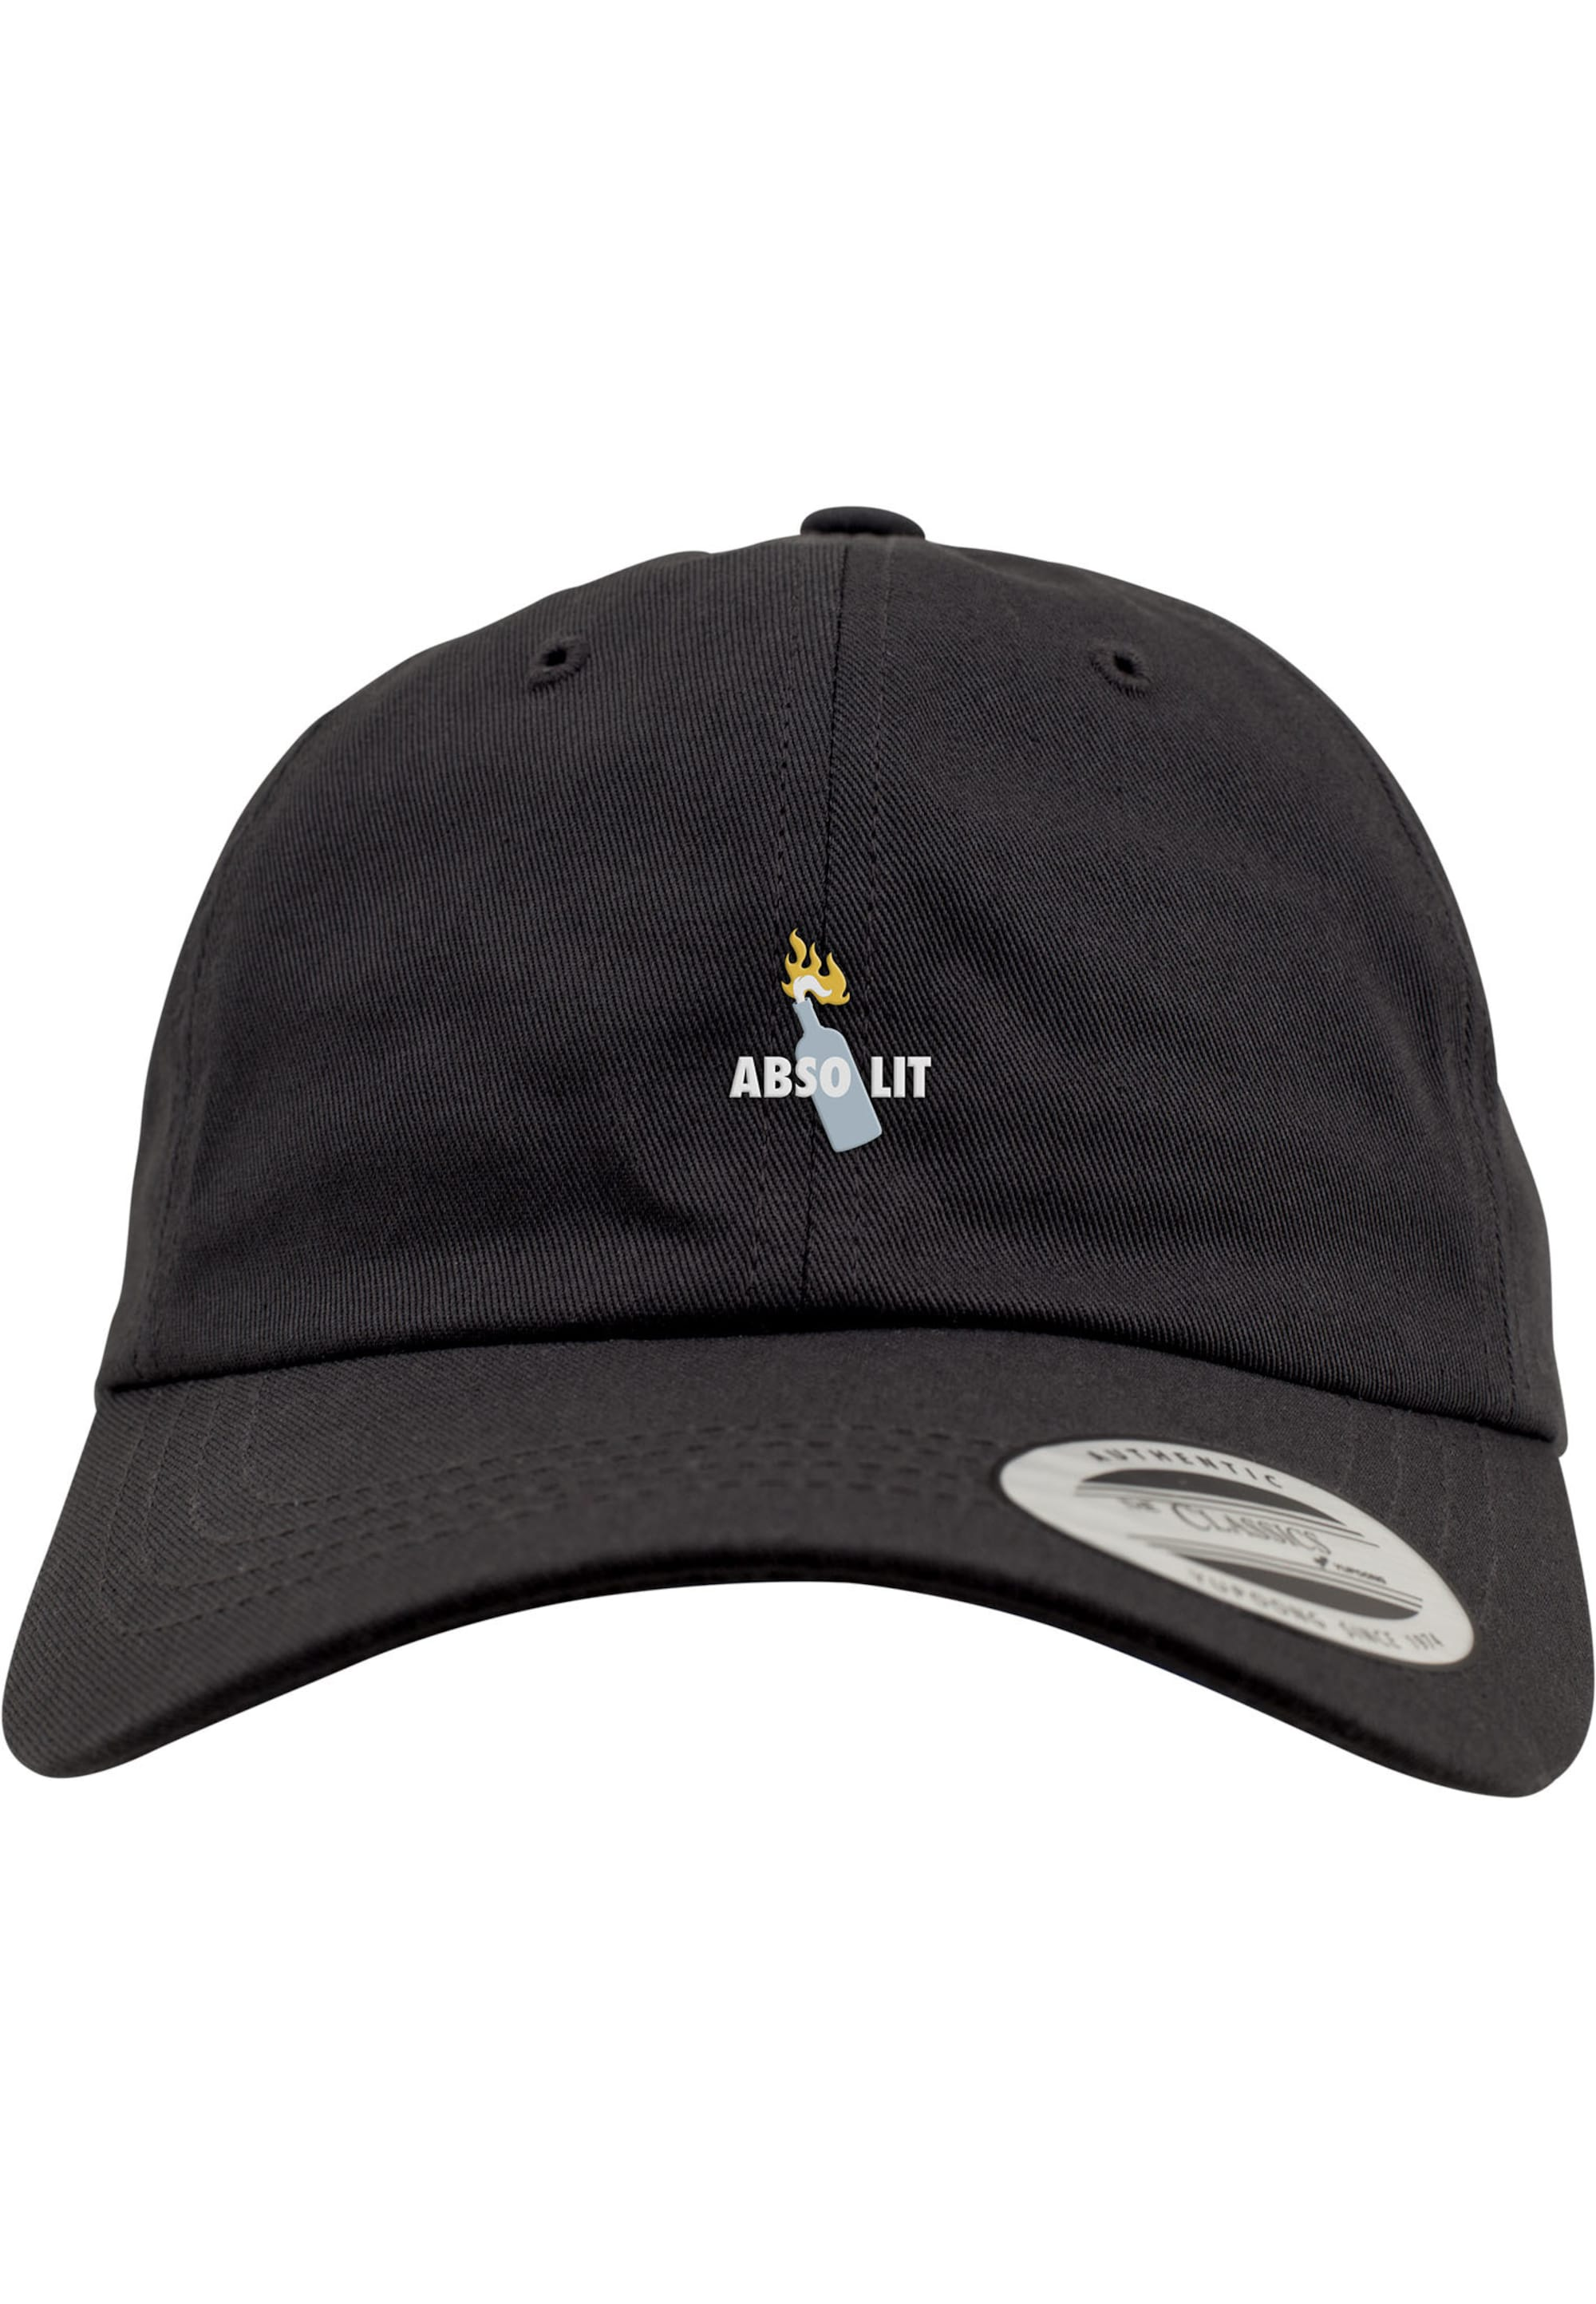 mister tee - Dad Cap ´ABSOLIT´